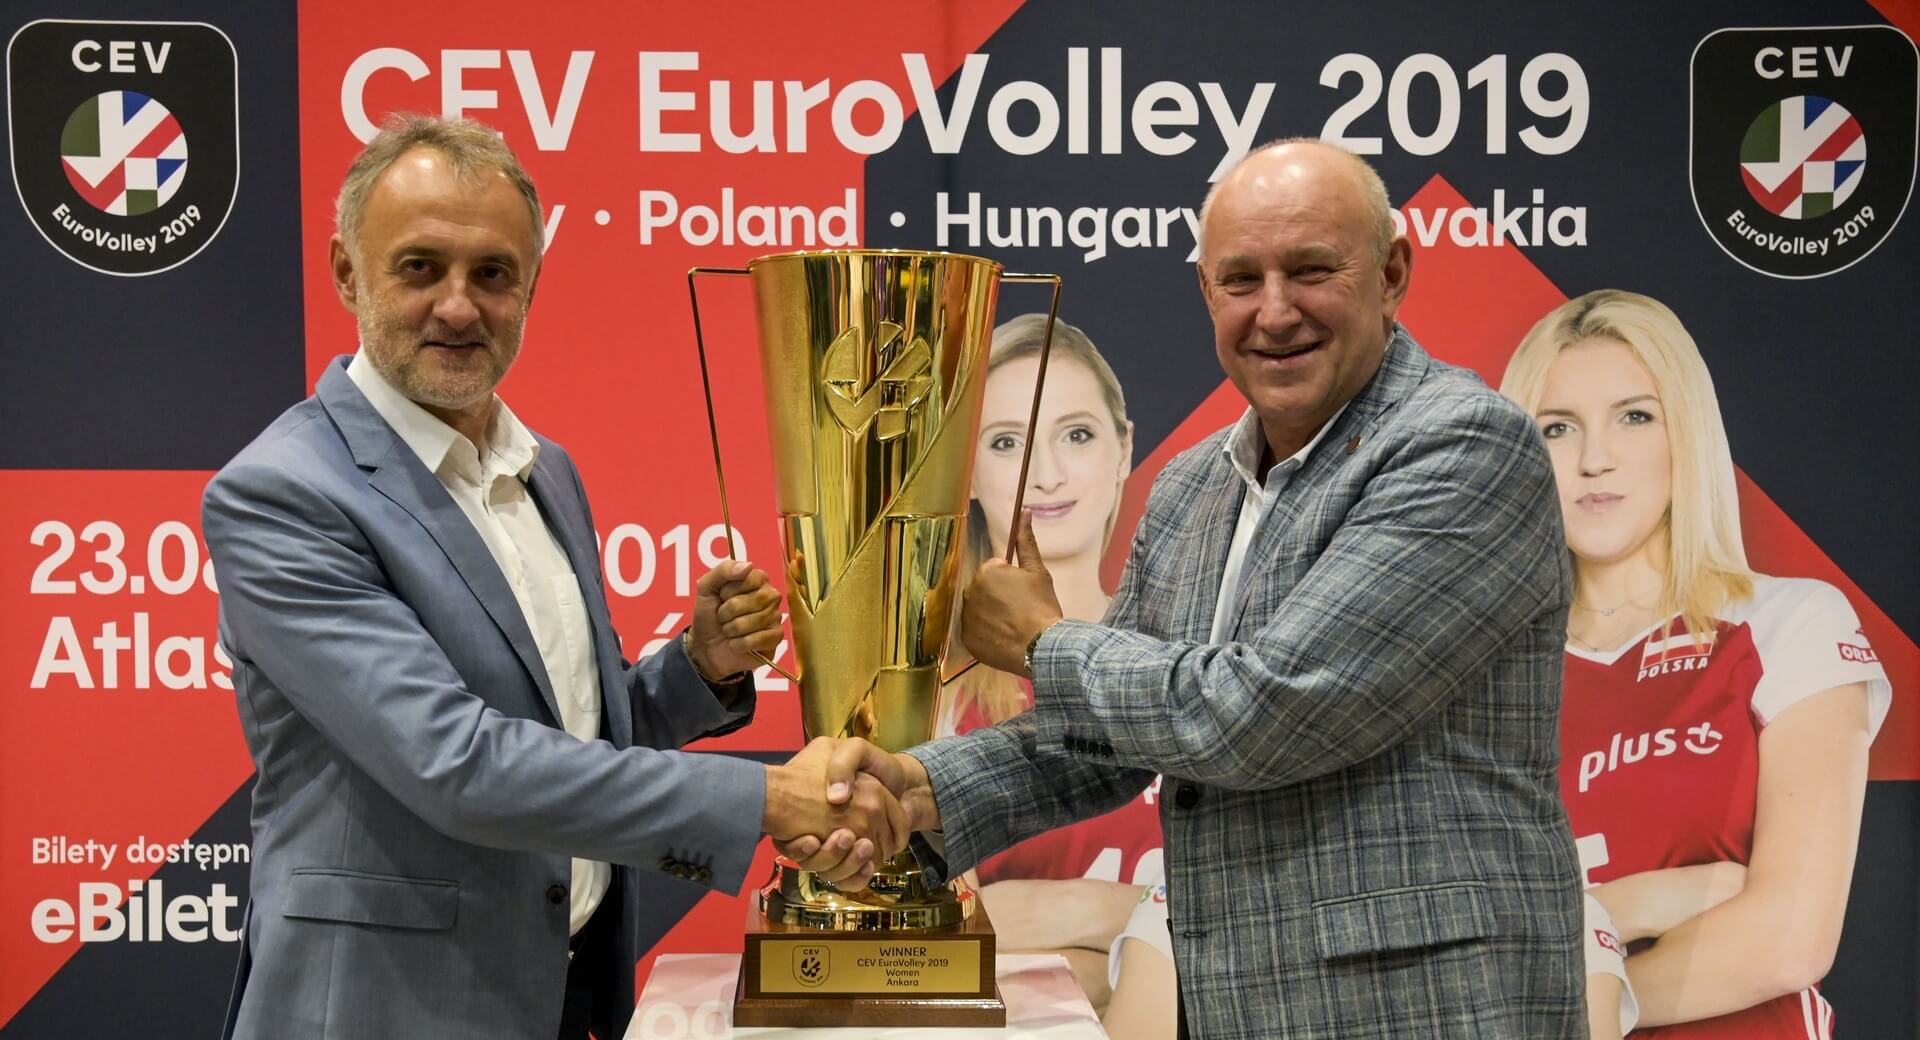 #EuroVolleyW trophy now touring Volleyland